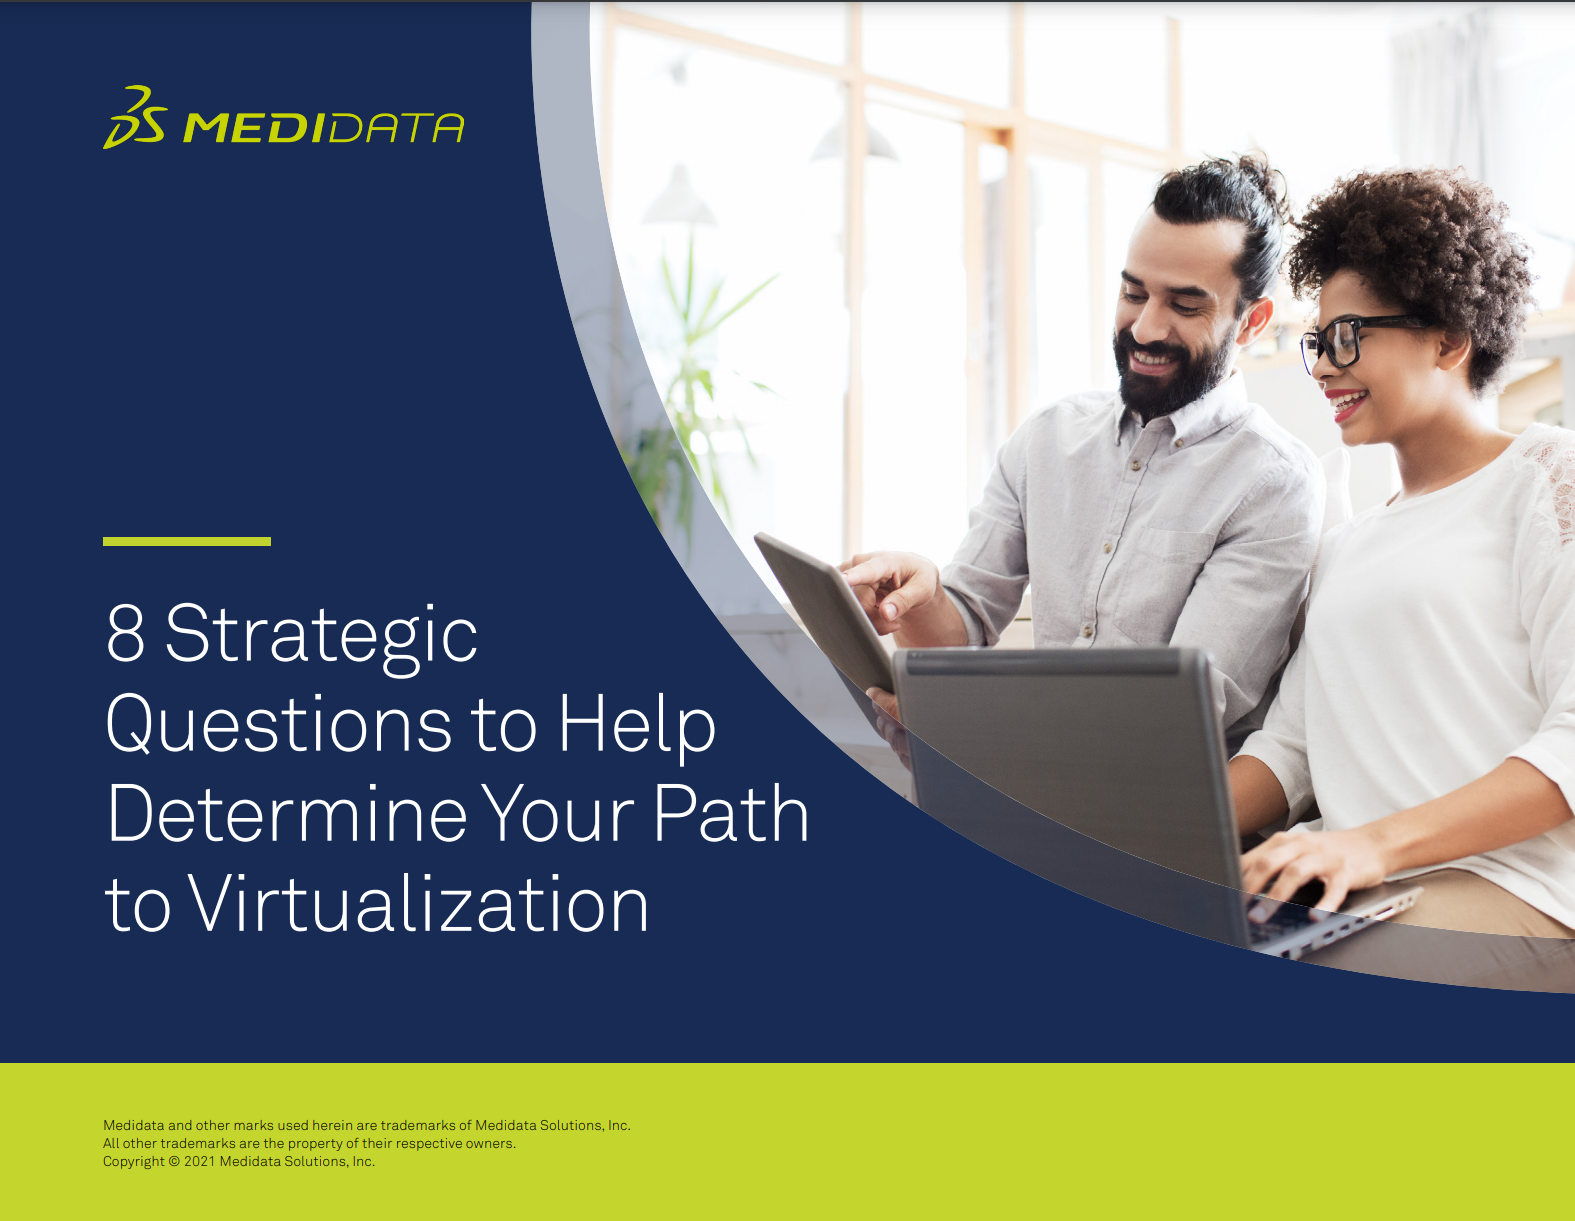 8 Strategic Questions to Help Determine Your Path to Virtualization